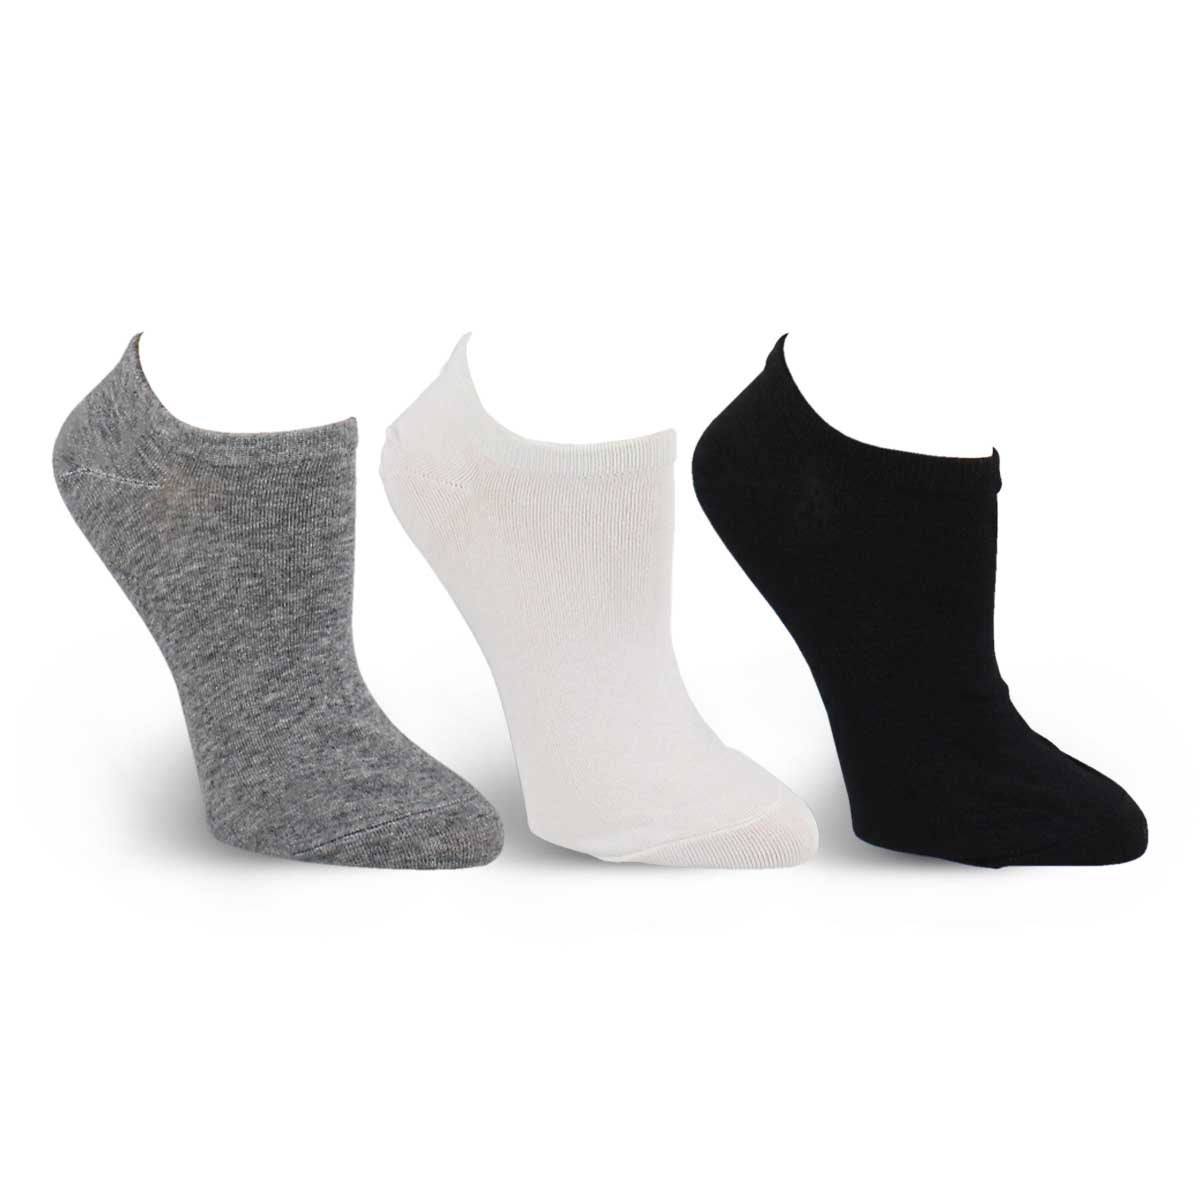 Lds Converse assorted no show sock 3 pk